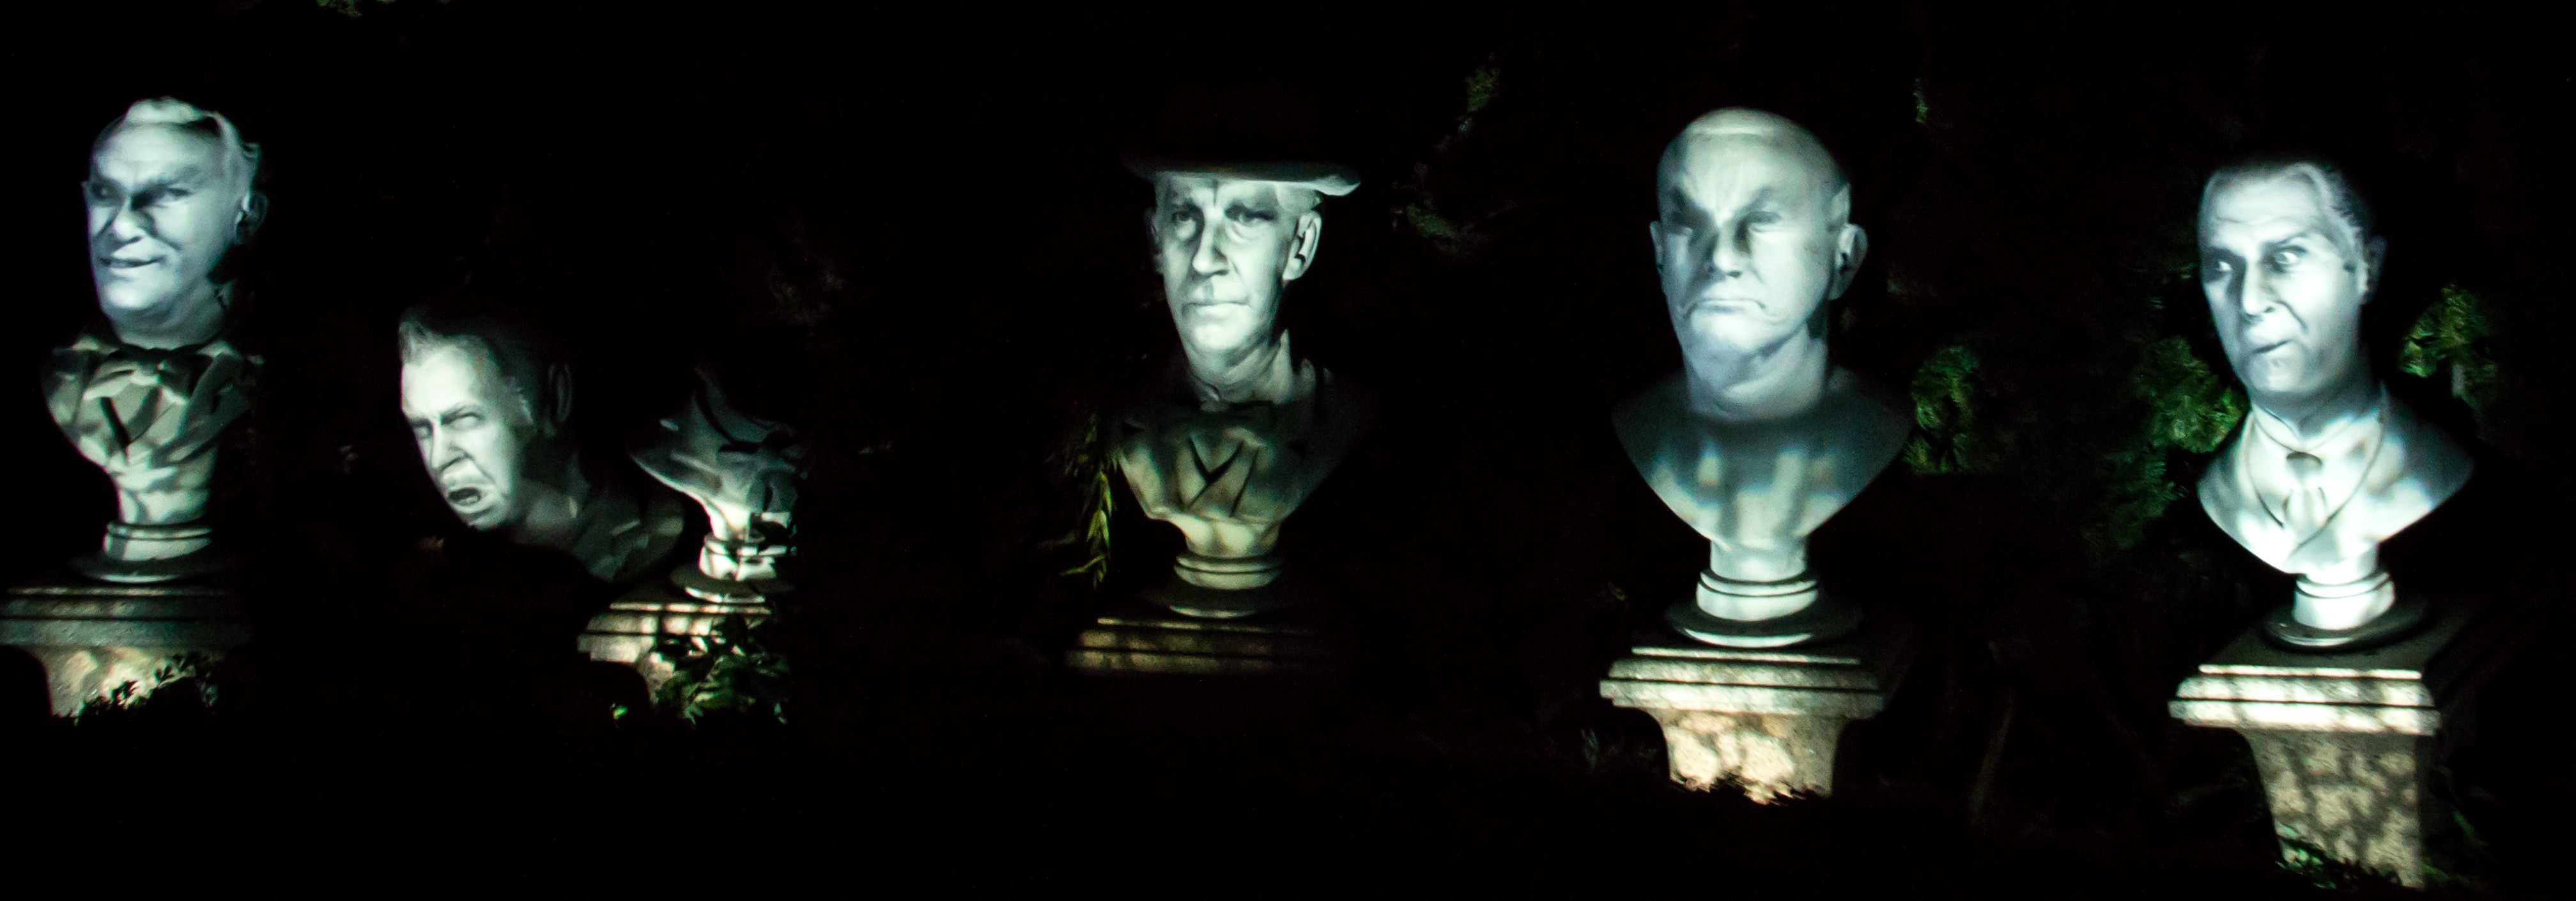 Singing Busts de Haunted Mansion / Phantom Manor / Source : dawgshed.com @Syrinx